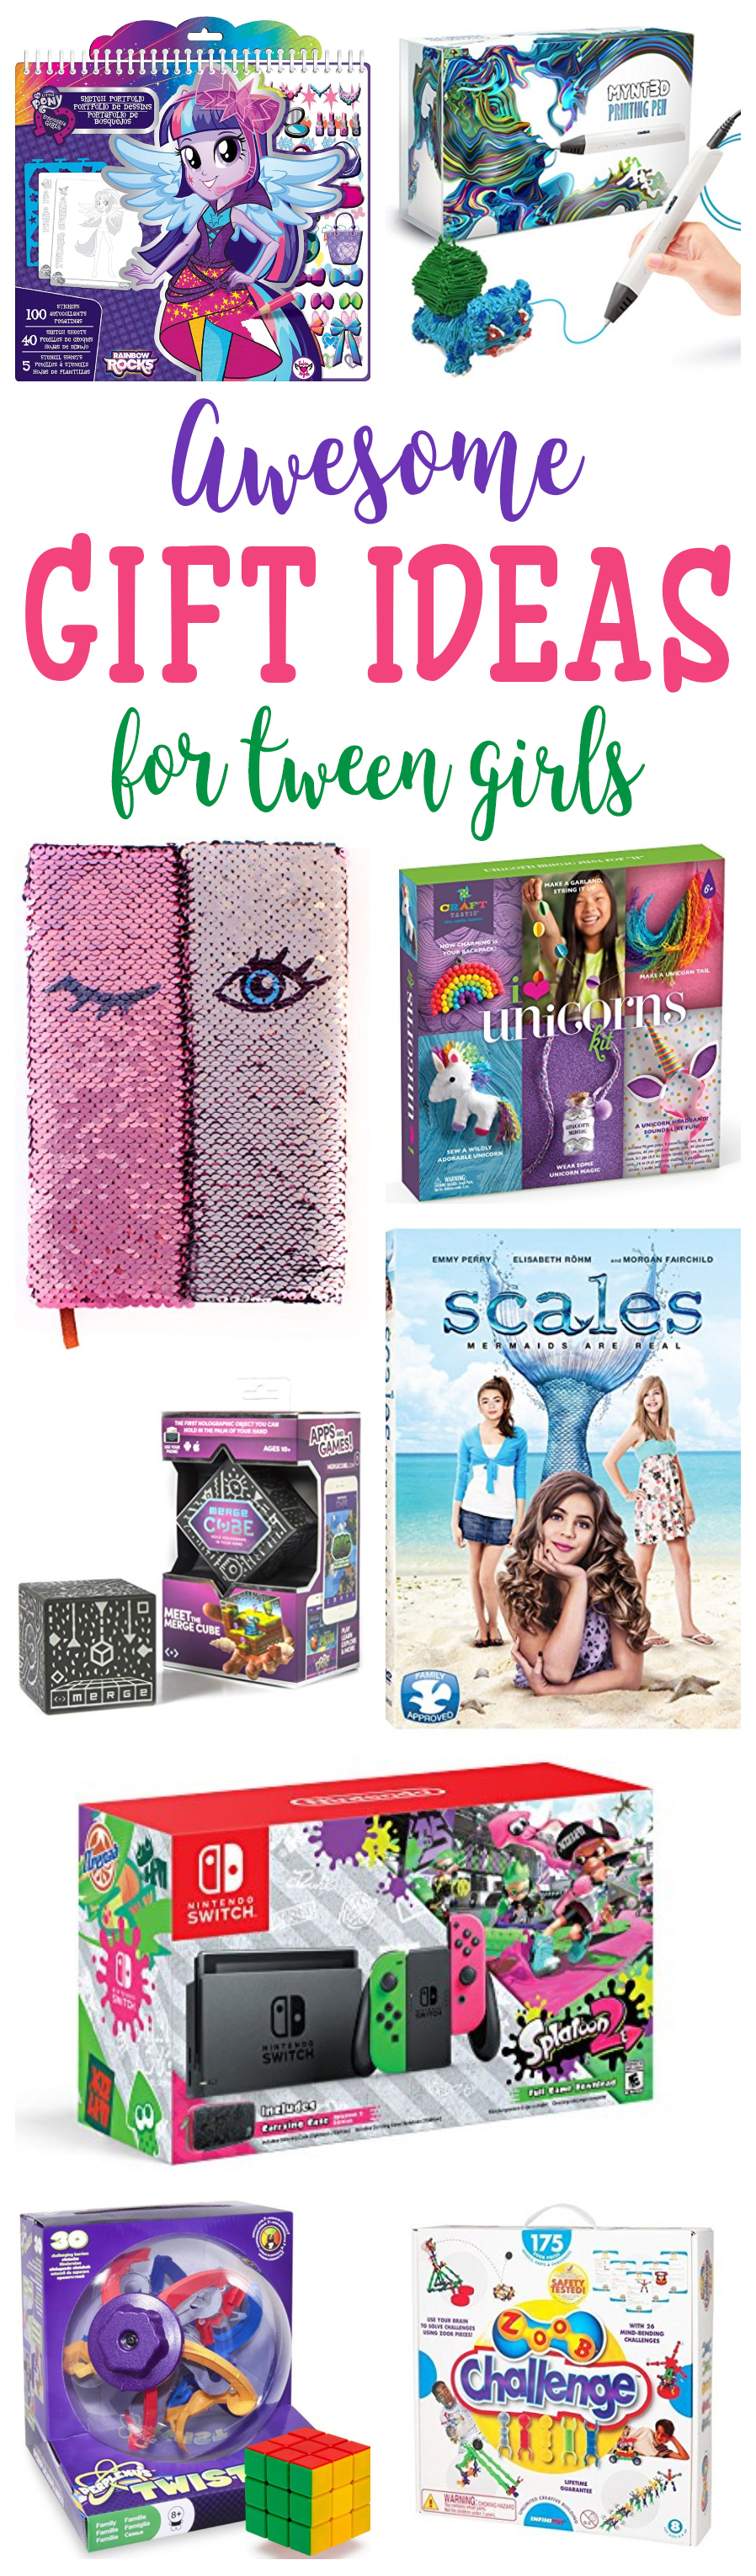 Gift Ideas For Tween Girls - 2018 Gift Guide